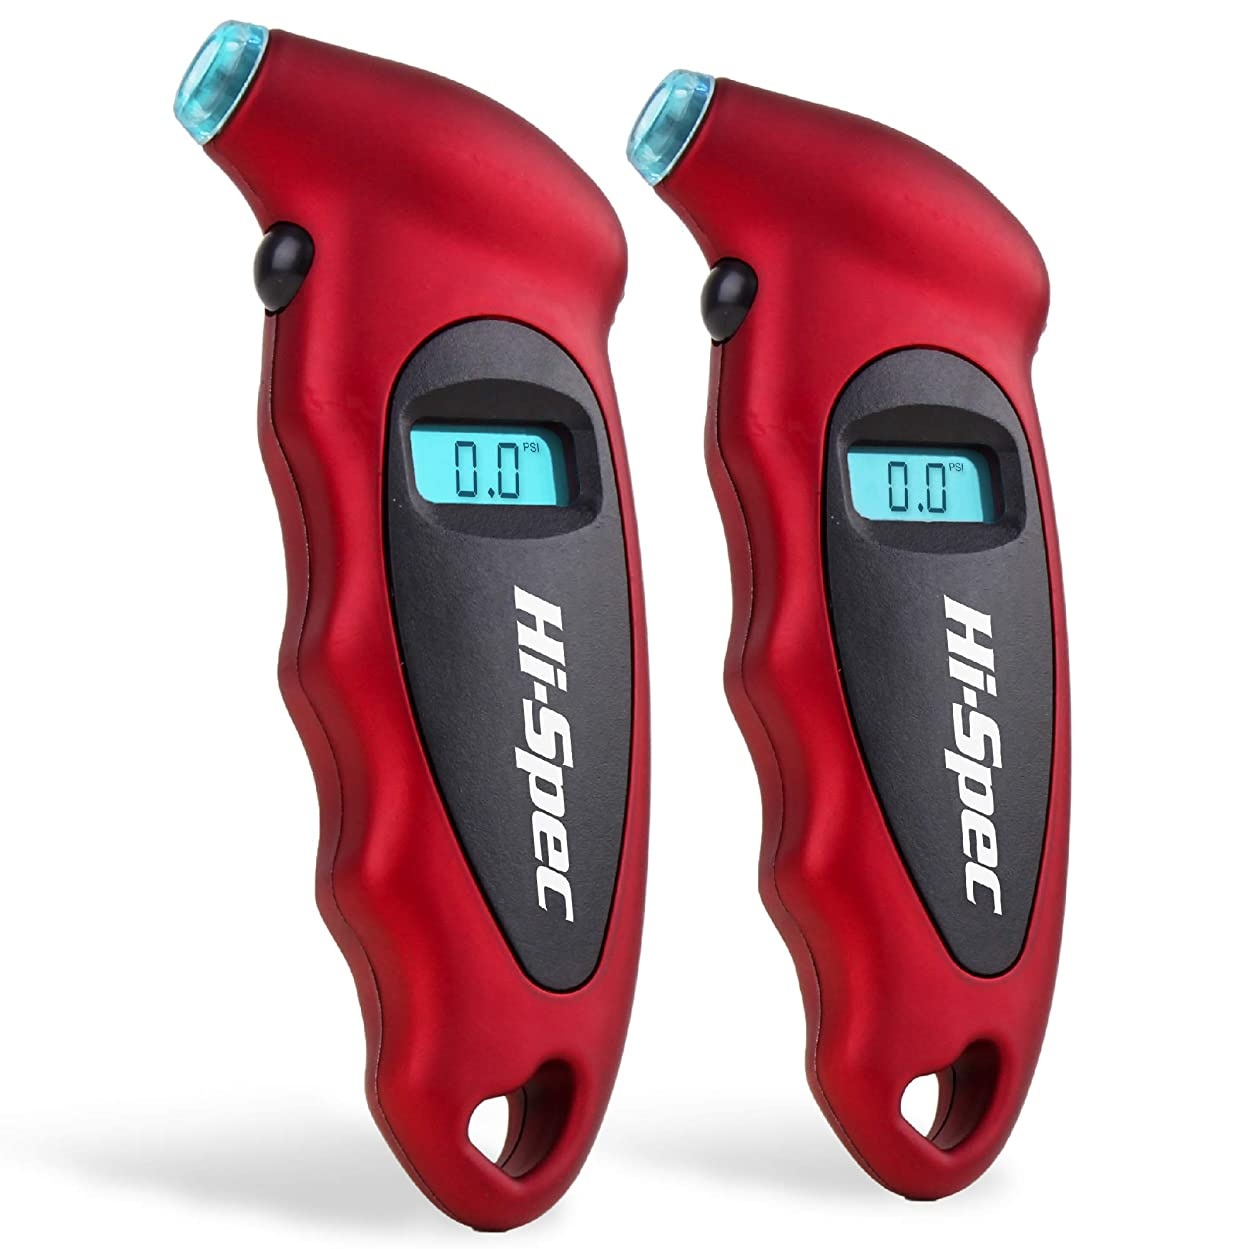 Hi-Spec Digital Tire Air Pressure Gauge with Nozzle Light, max 150 PSI - 4 Units: PSI, BAR, KPA, Kg/cm2, LCD Display and Auto Shutoff for Cars, Bike Motorbikes, Trucks, Tyre Tool Tester Checker - 2 pk et70380966608